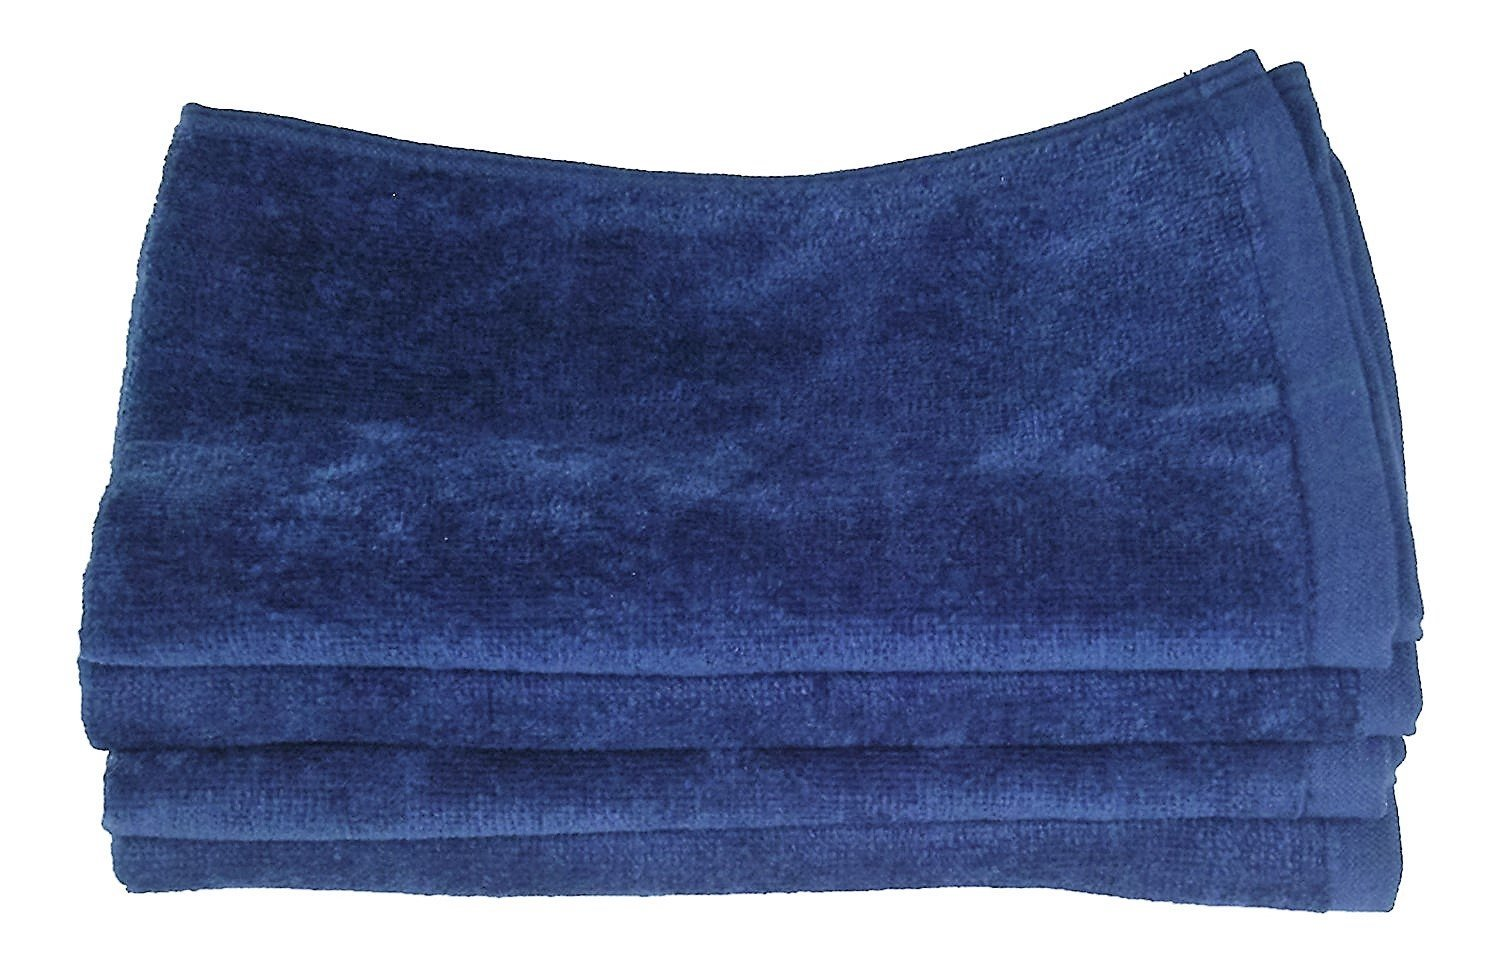 Fingertip Towels 100% Cotton - Terry-Velour _4 _ Pack 11